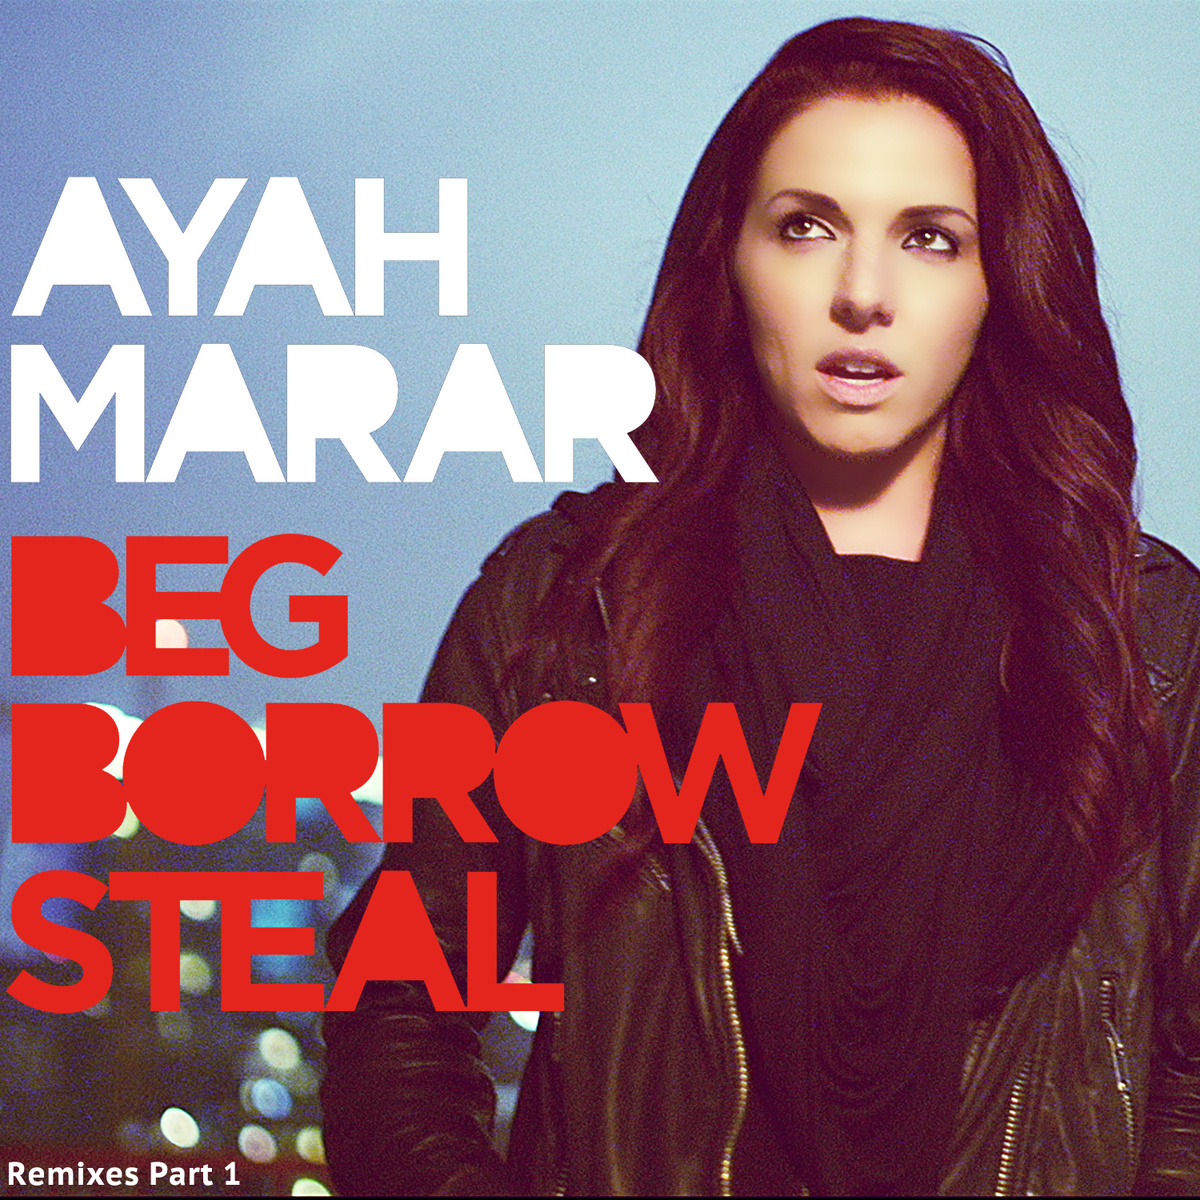 Ayah Marar – Beg Borrow Steal (Remixes Part 1)